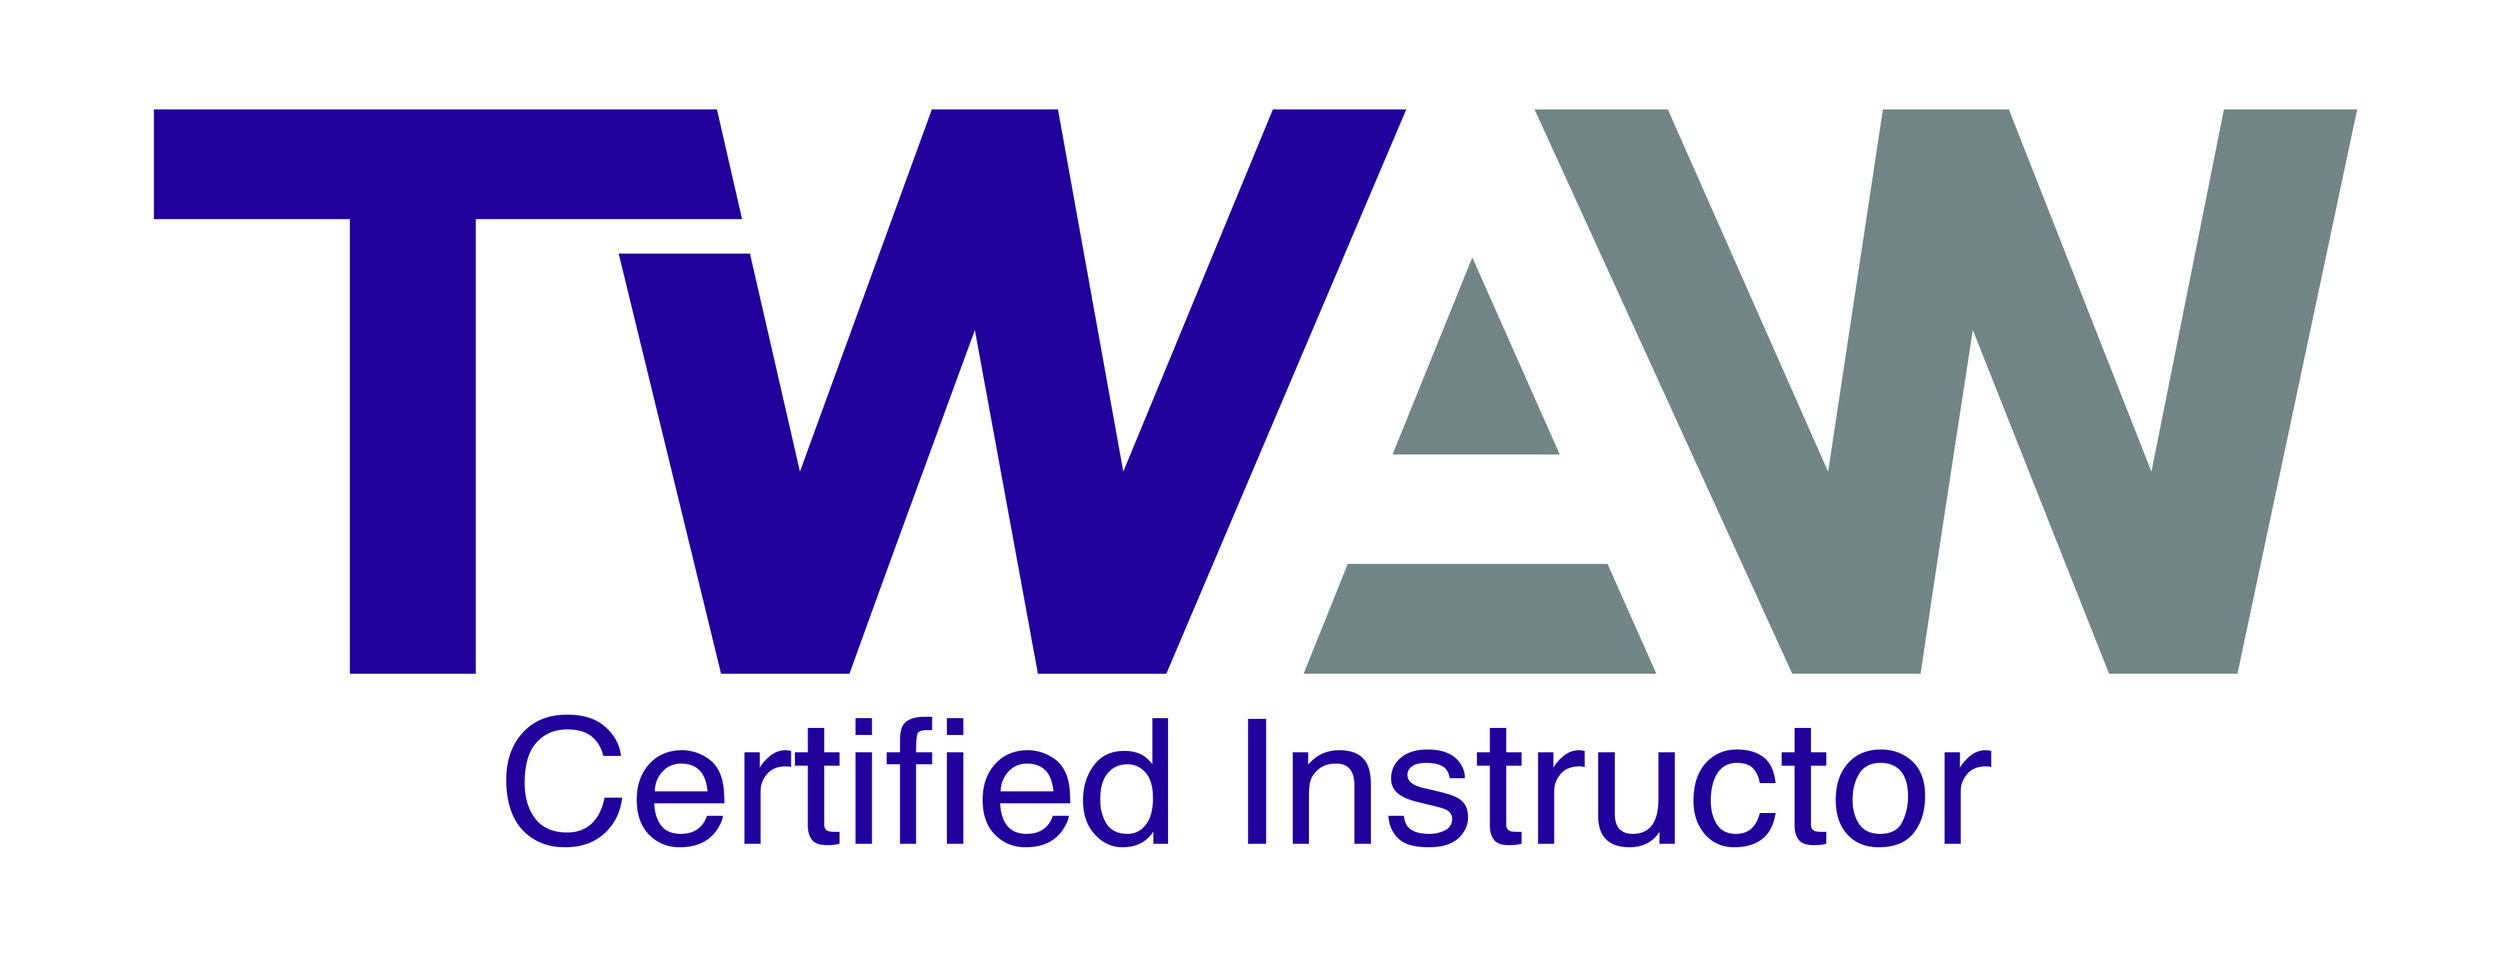 The Well Armed Woman Certified Instructor -